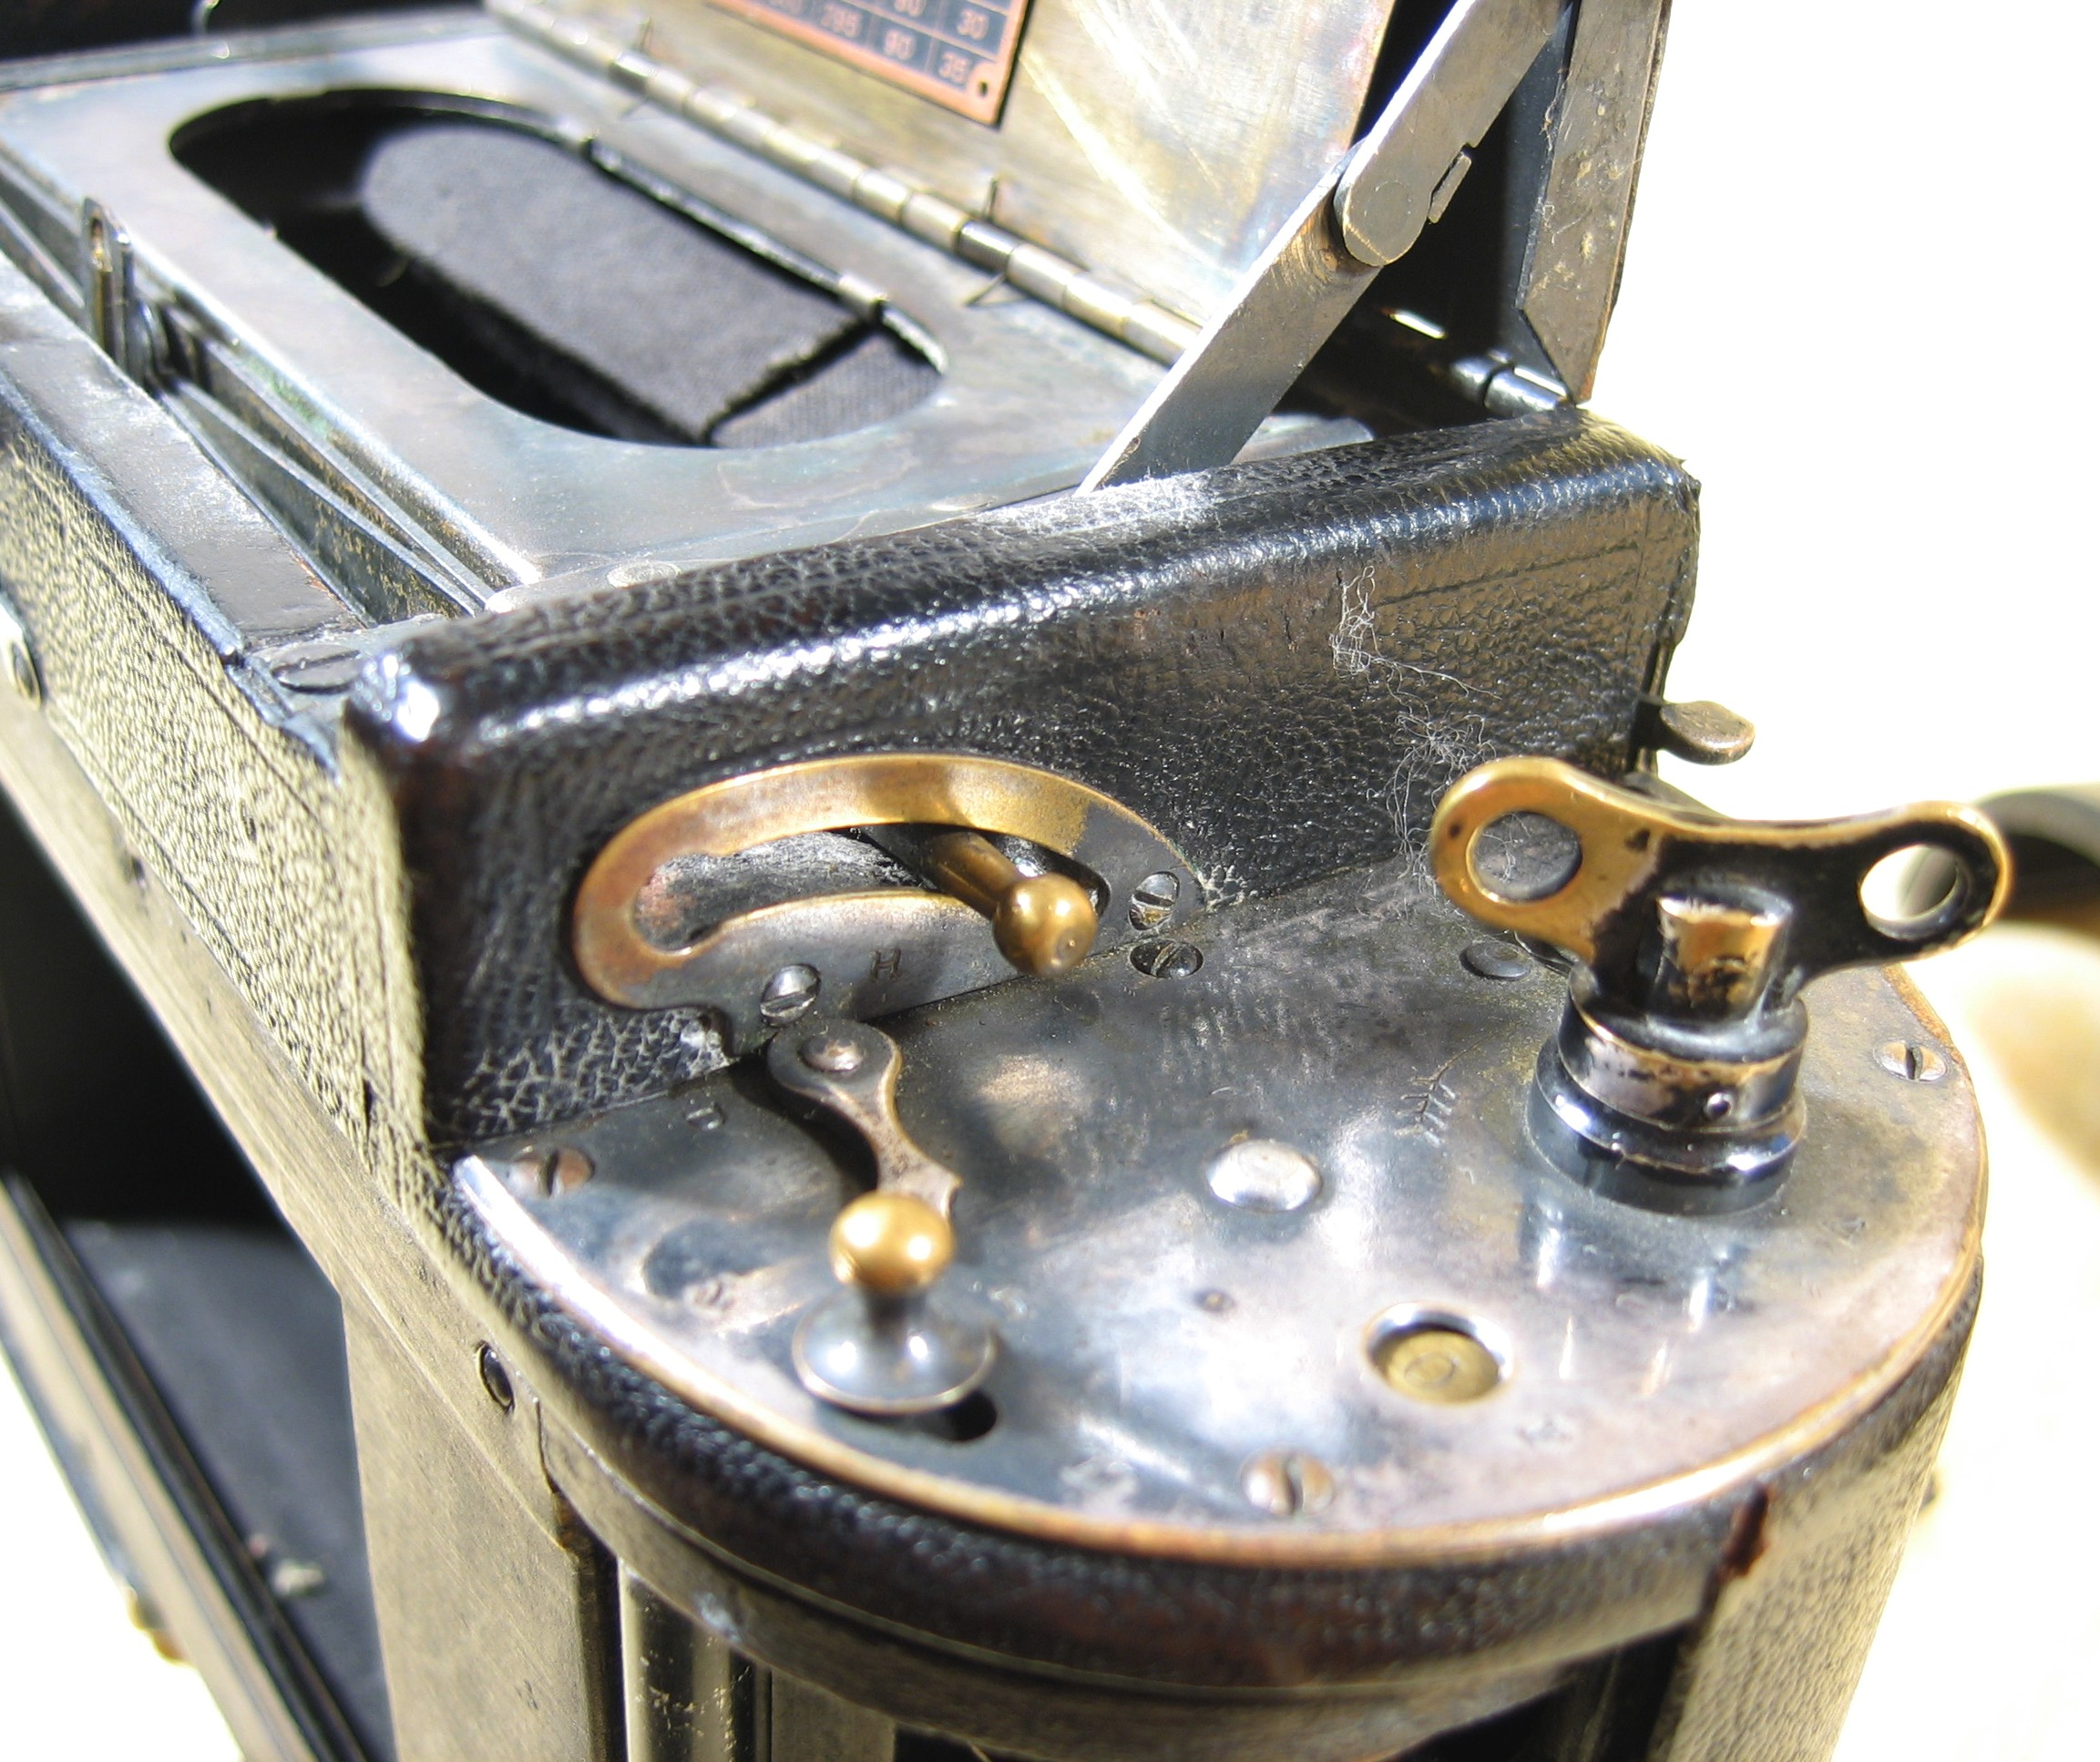 Wallpaper Appareils photos 0874-8 FOLMER et SCHWING Graflex 1A autographic, collection AMI